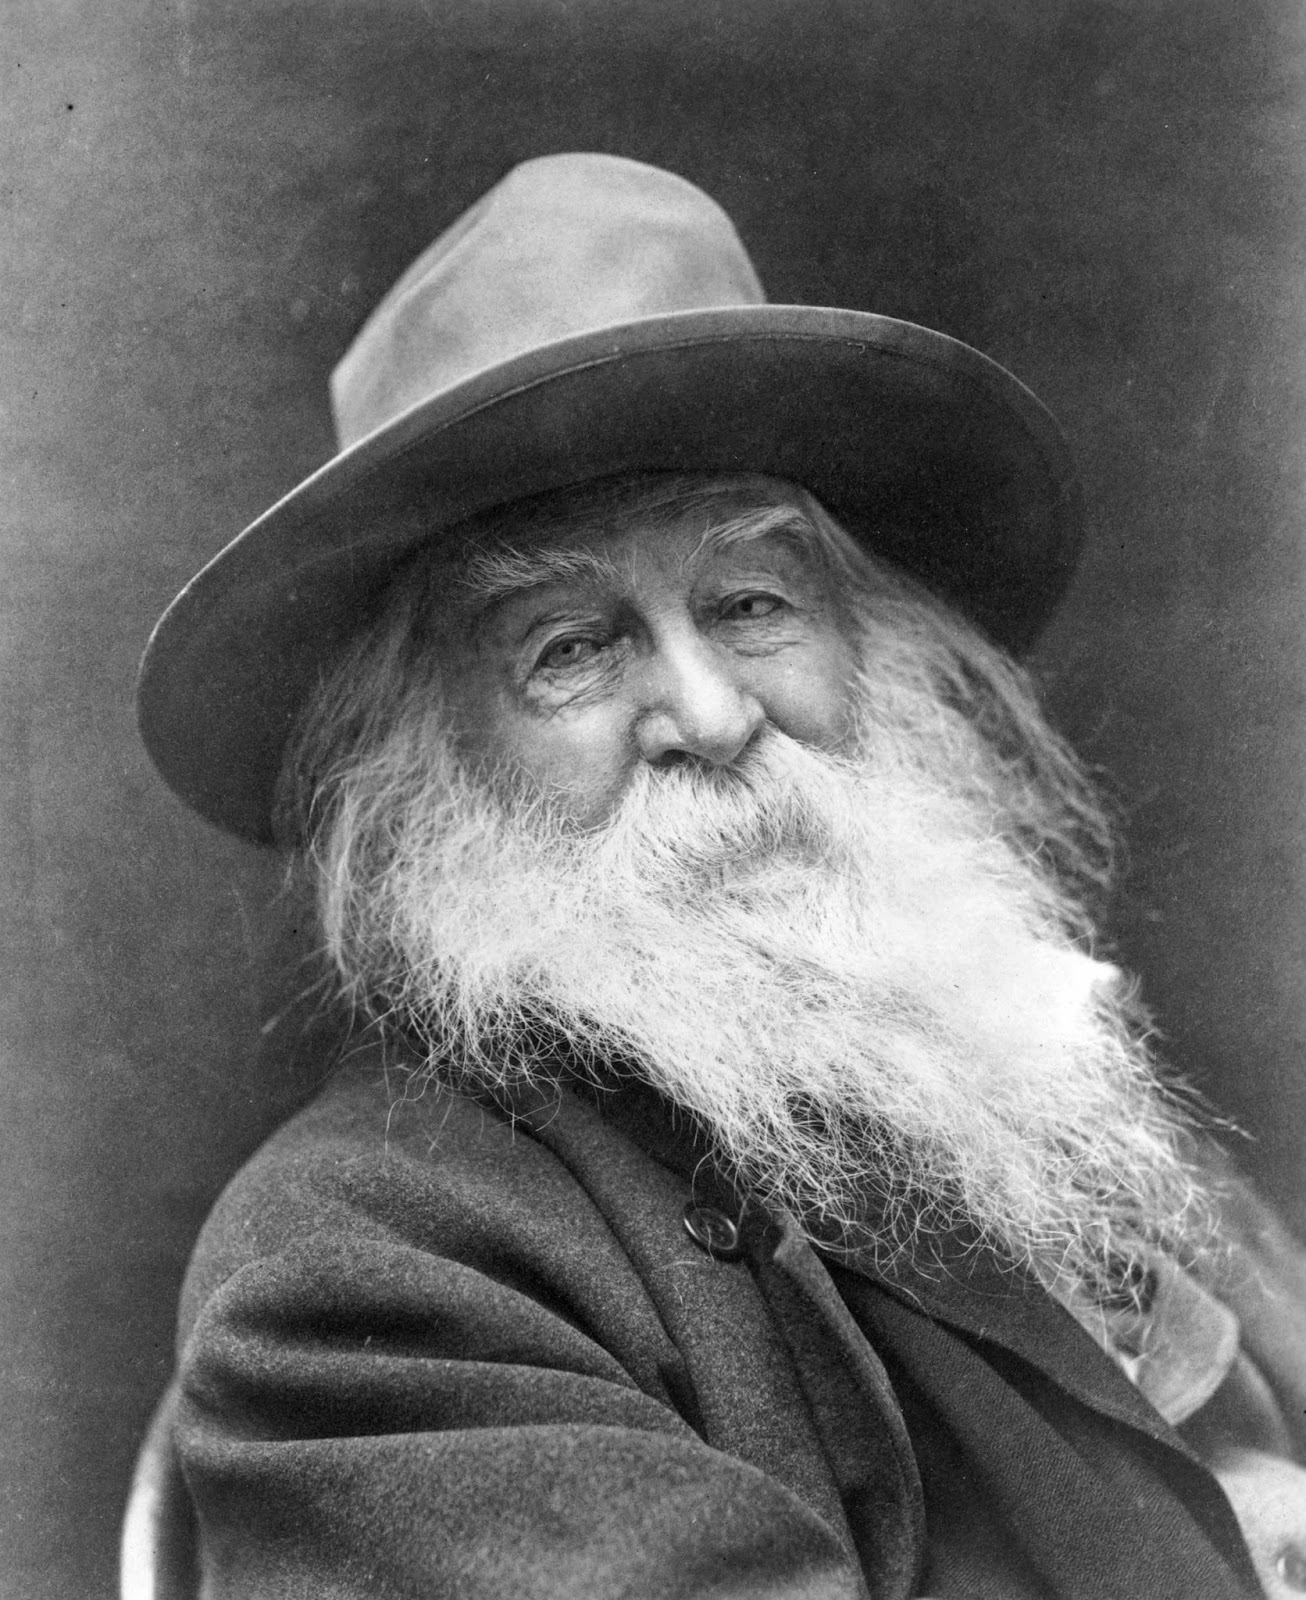 jesse s blog walt whitman poet of dom and democracy walt whitman 1819 1892